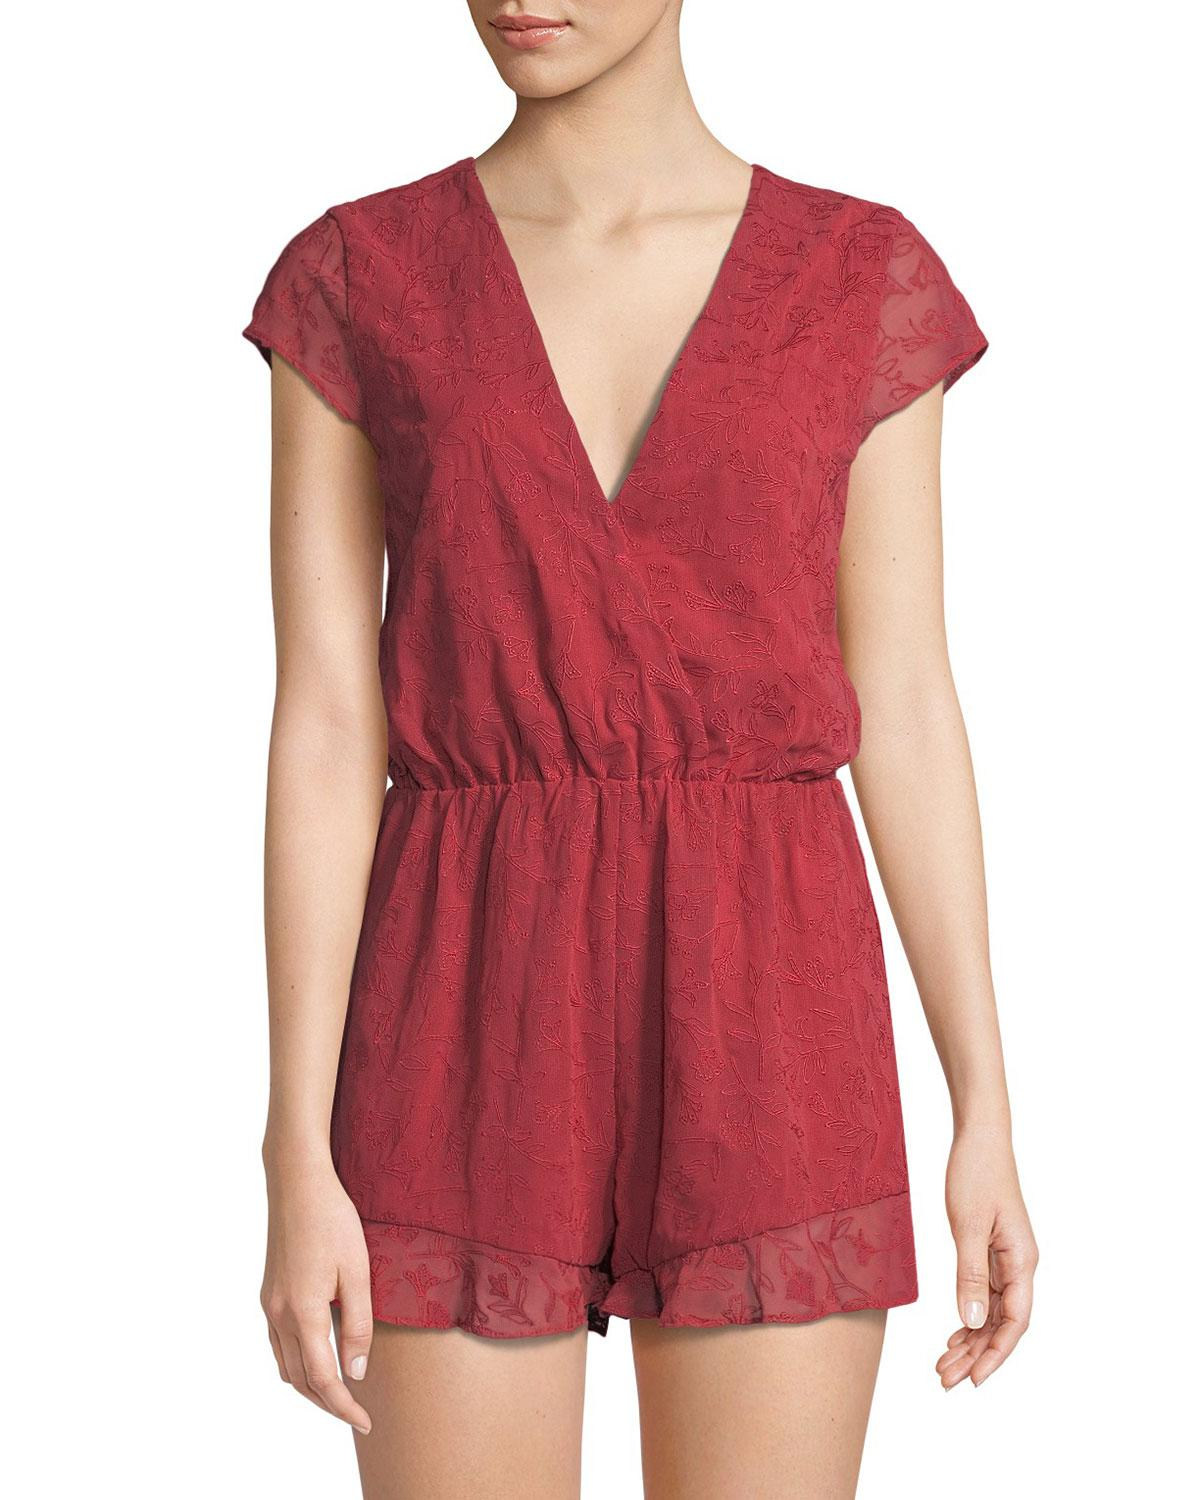 3c68727e4b26 Lyst - Lovers + Friends Hey Babe Lace-back Romper in Red